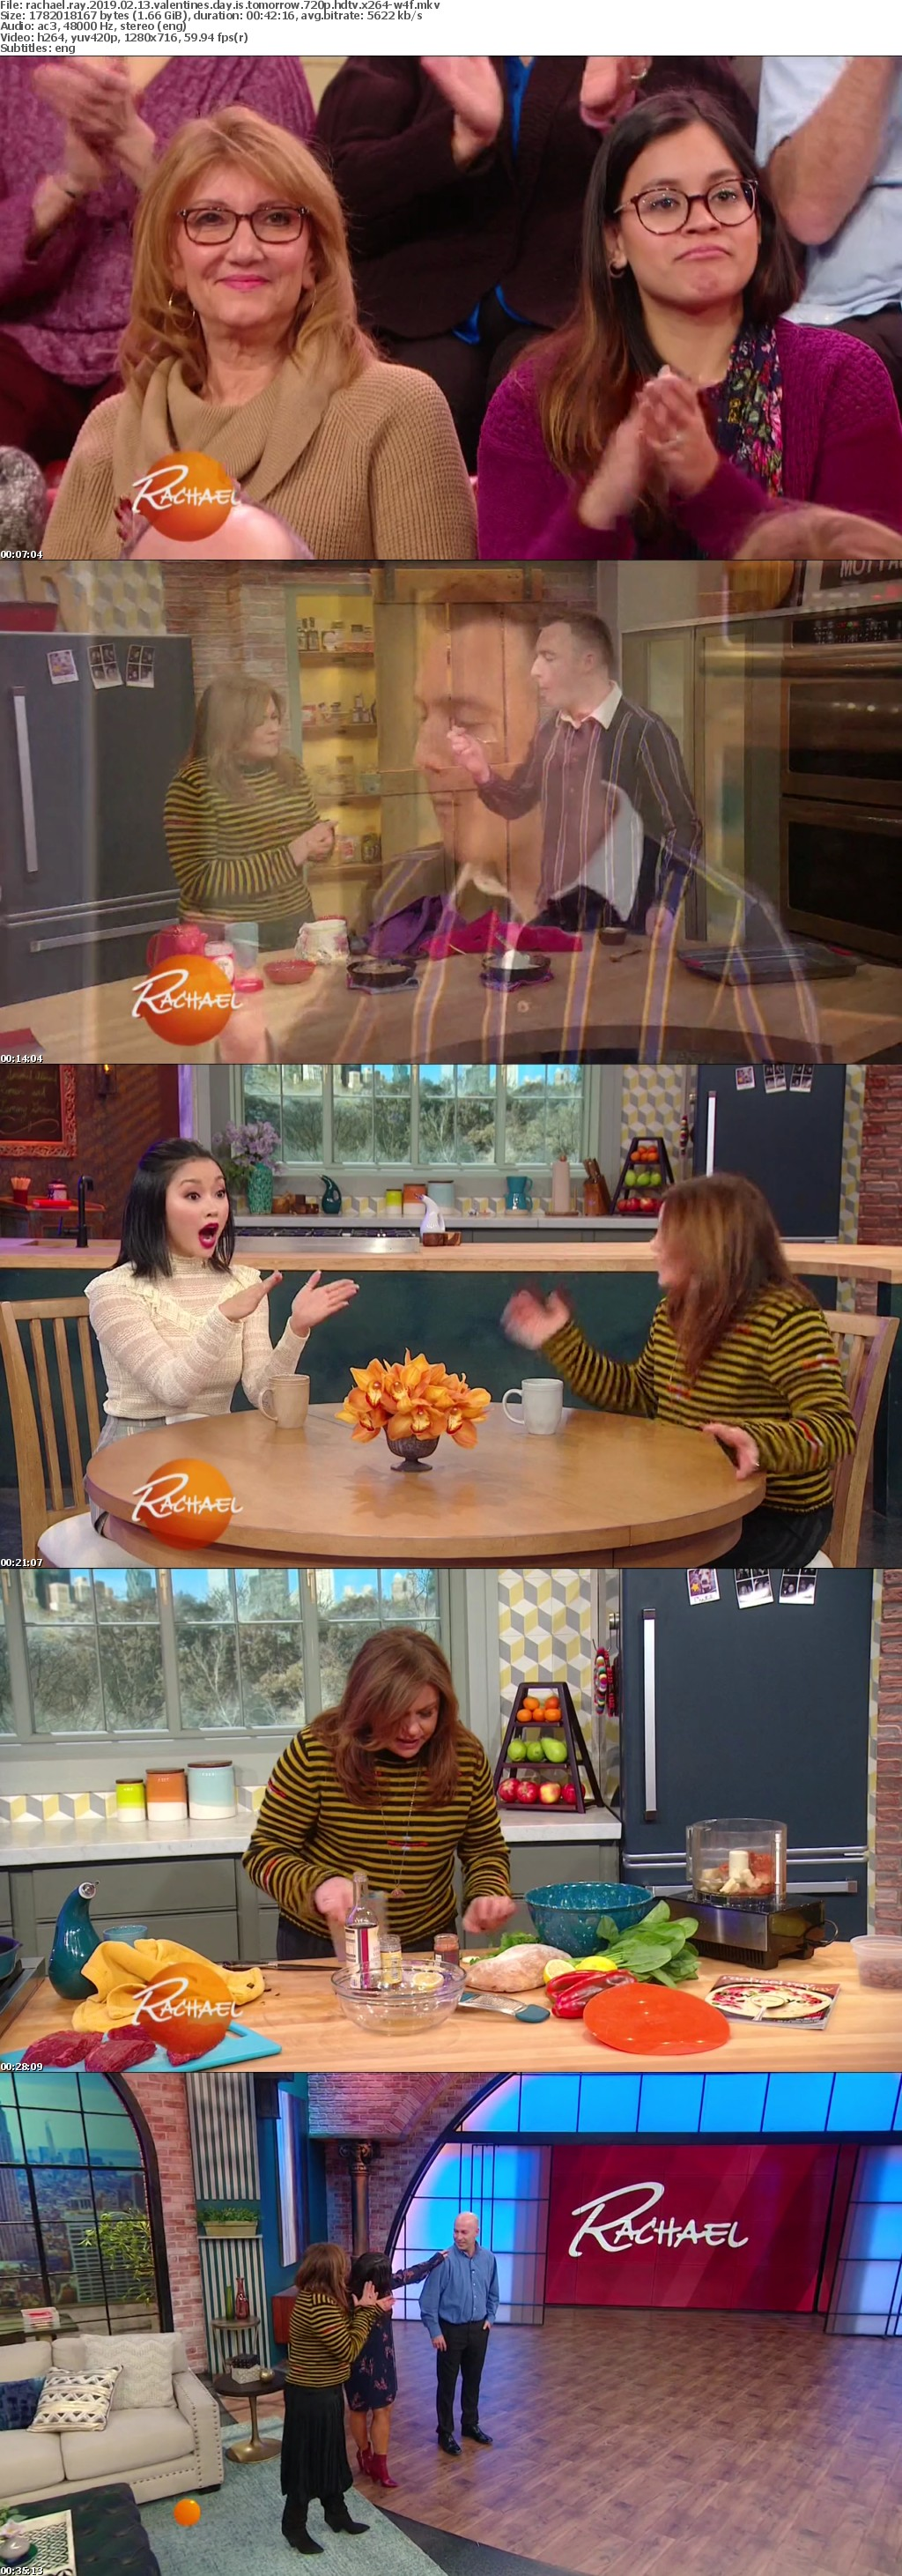 Rachael Ray 2019 02 13 Valentines Day is Tomorrow 720p HDTV x264-W4F